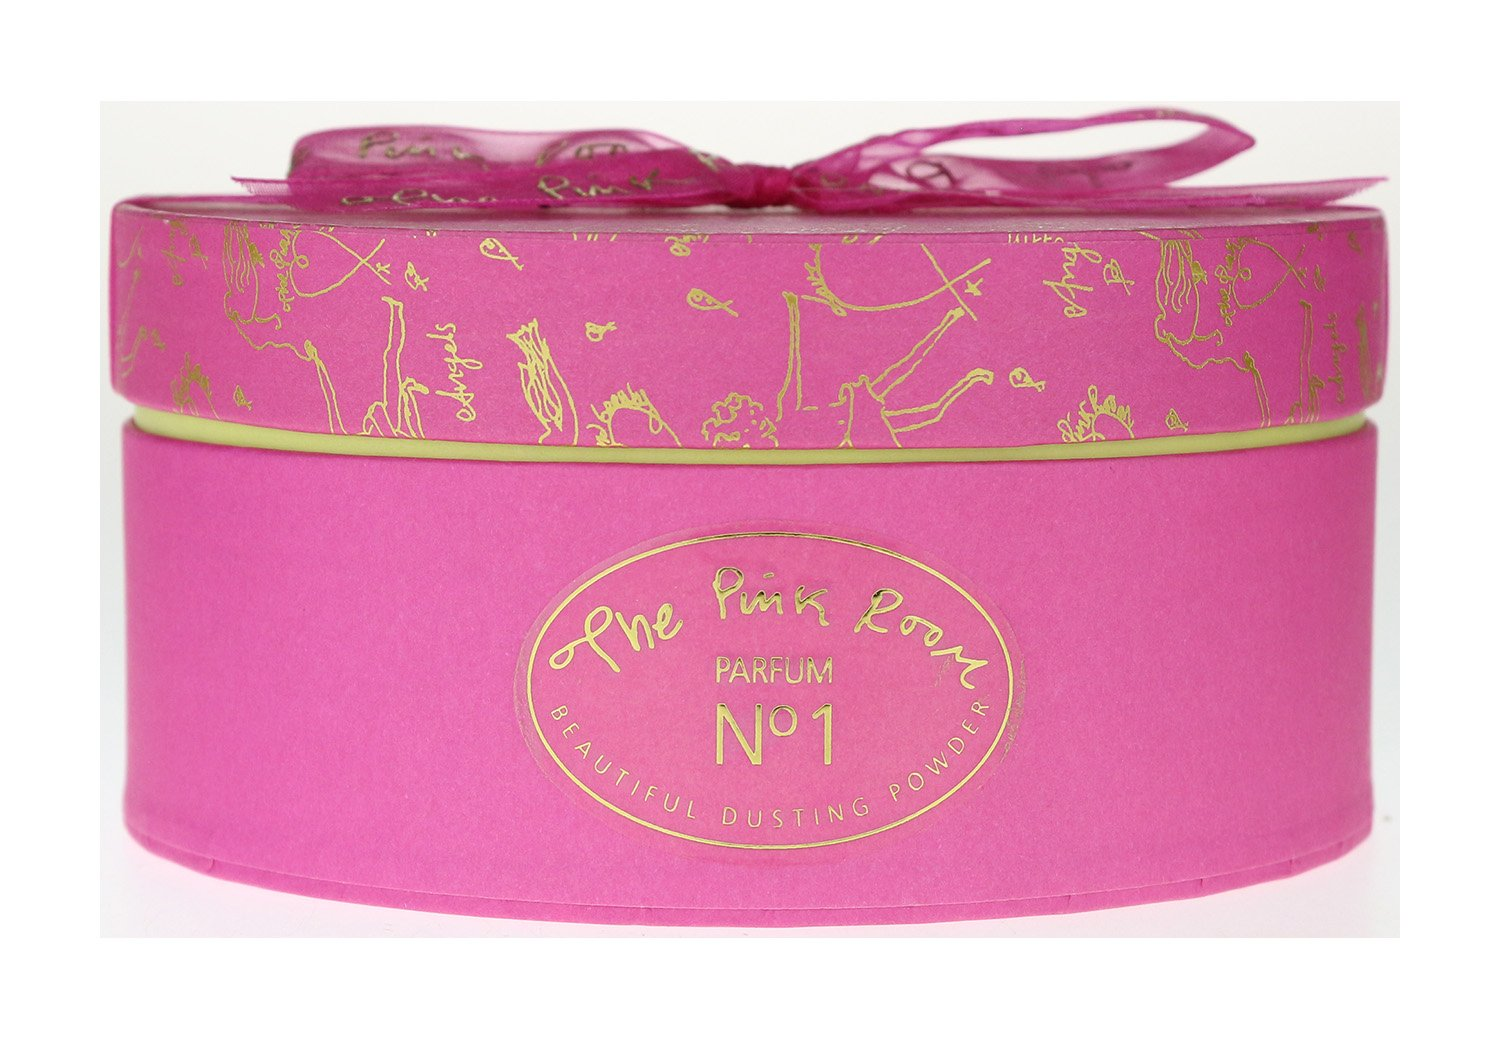 The Pink Room No 1 Beautiful Body Dusting Powder 5.29Oz/150g In Box